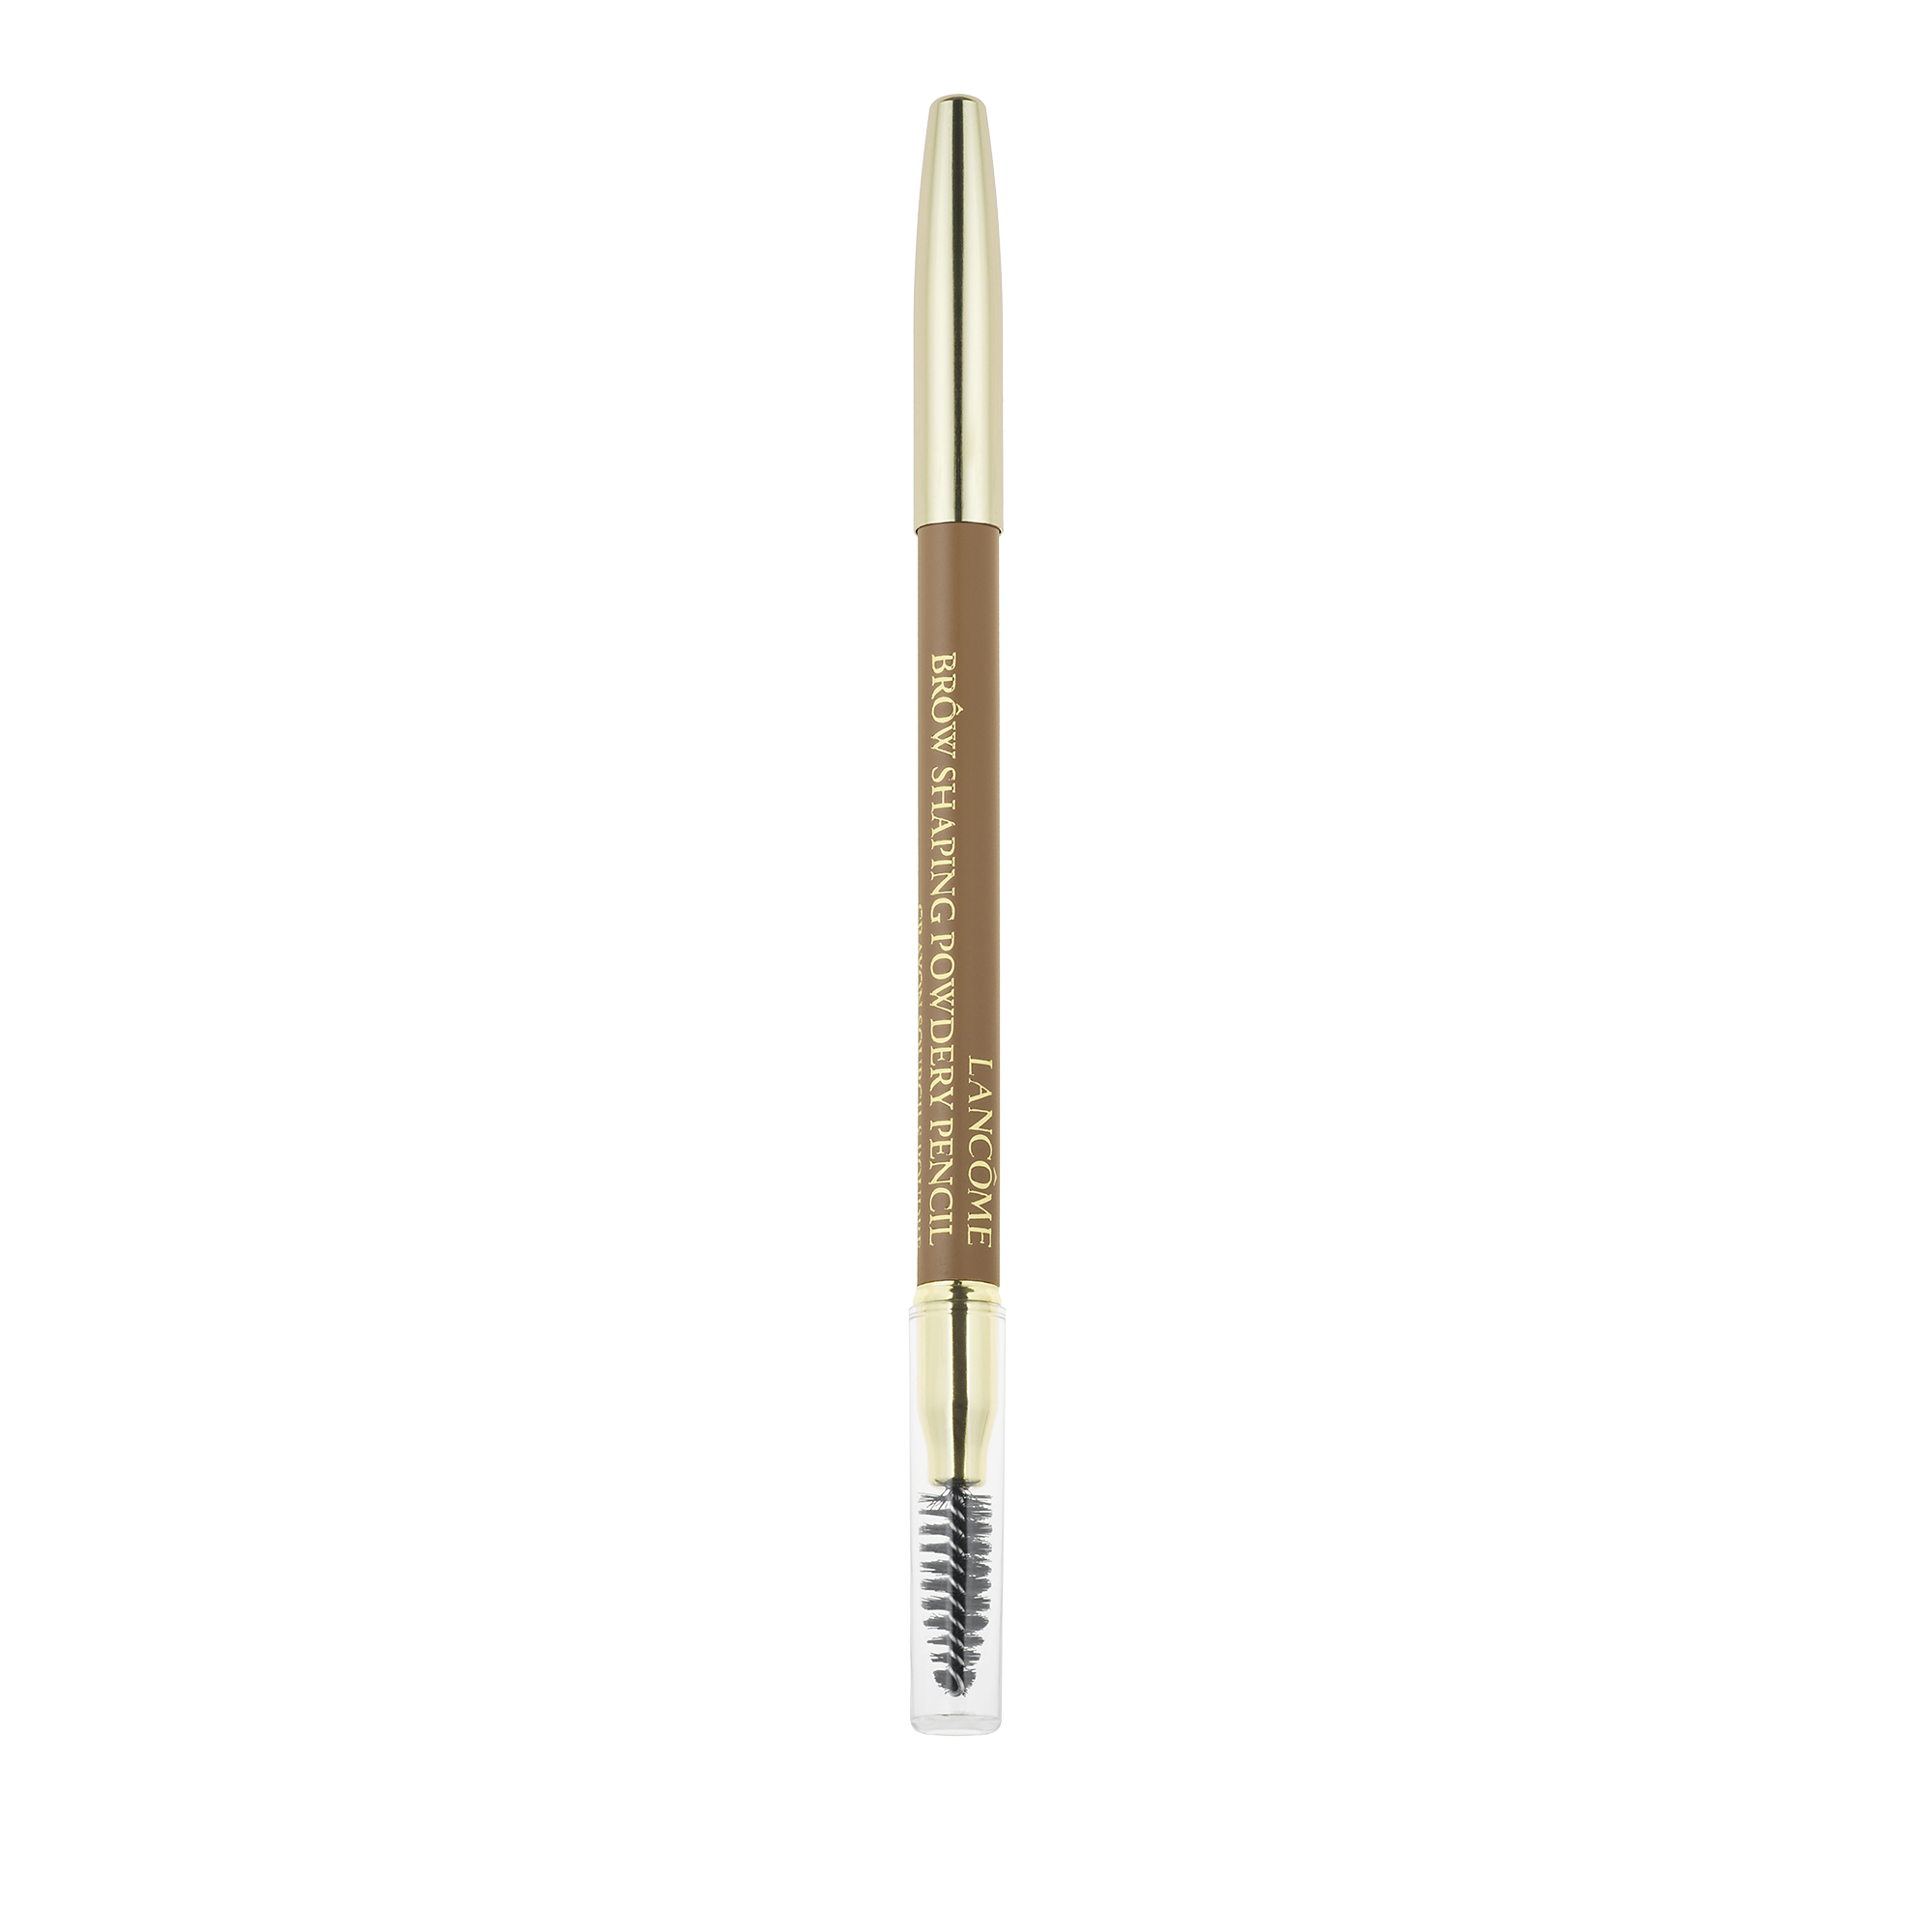 Brow Shaping Powdery Pencil 03 Light Brown